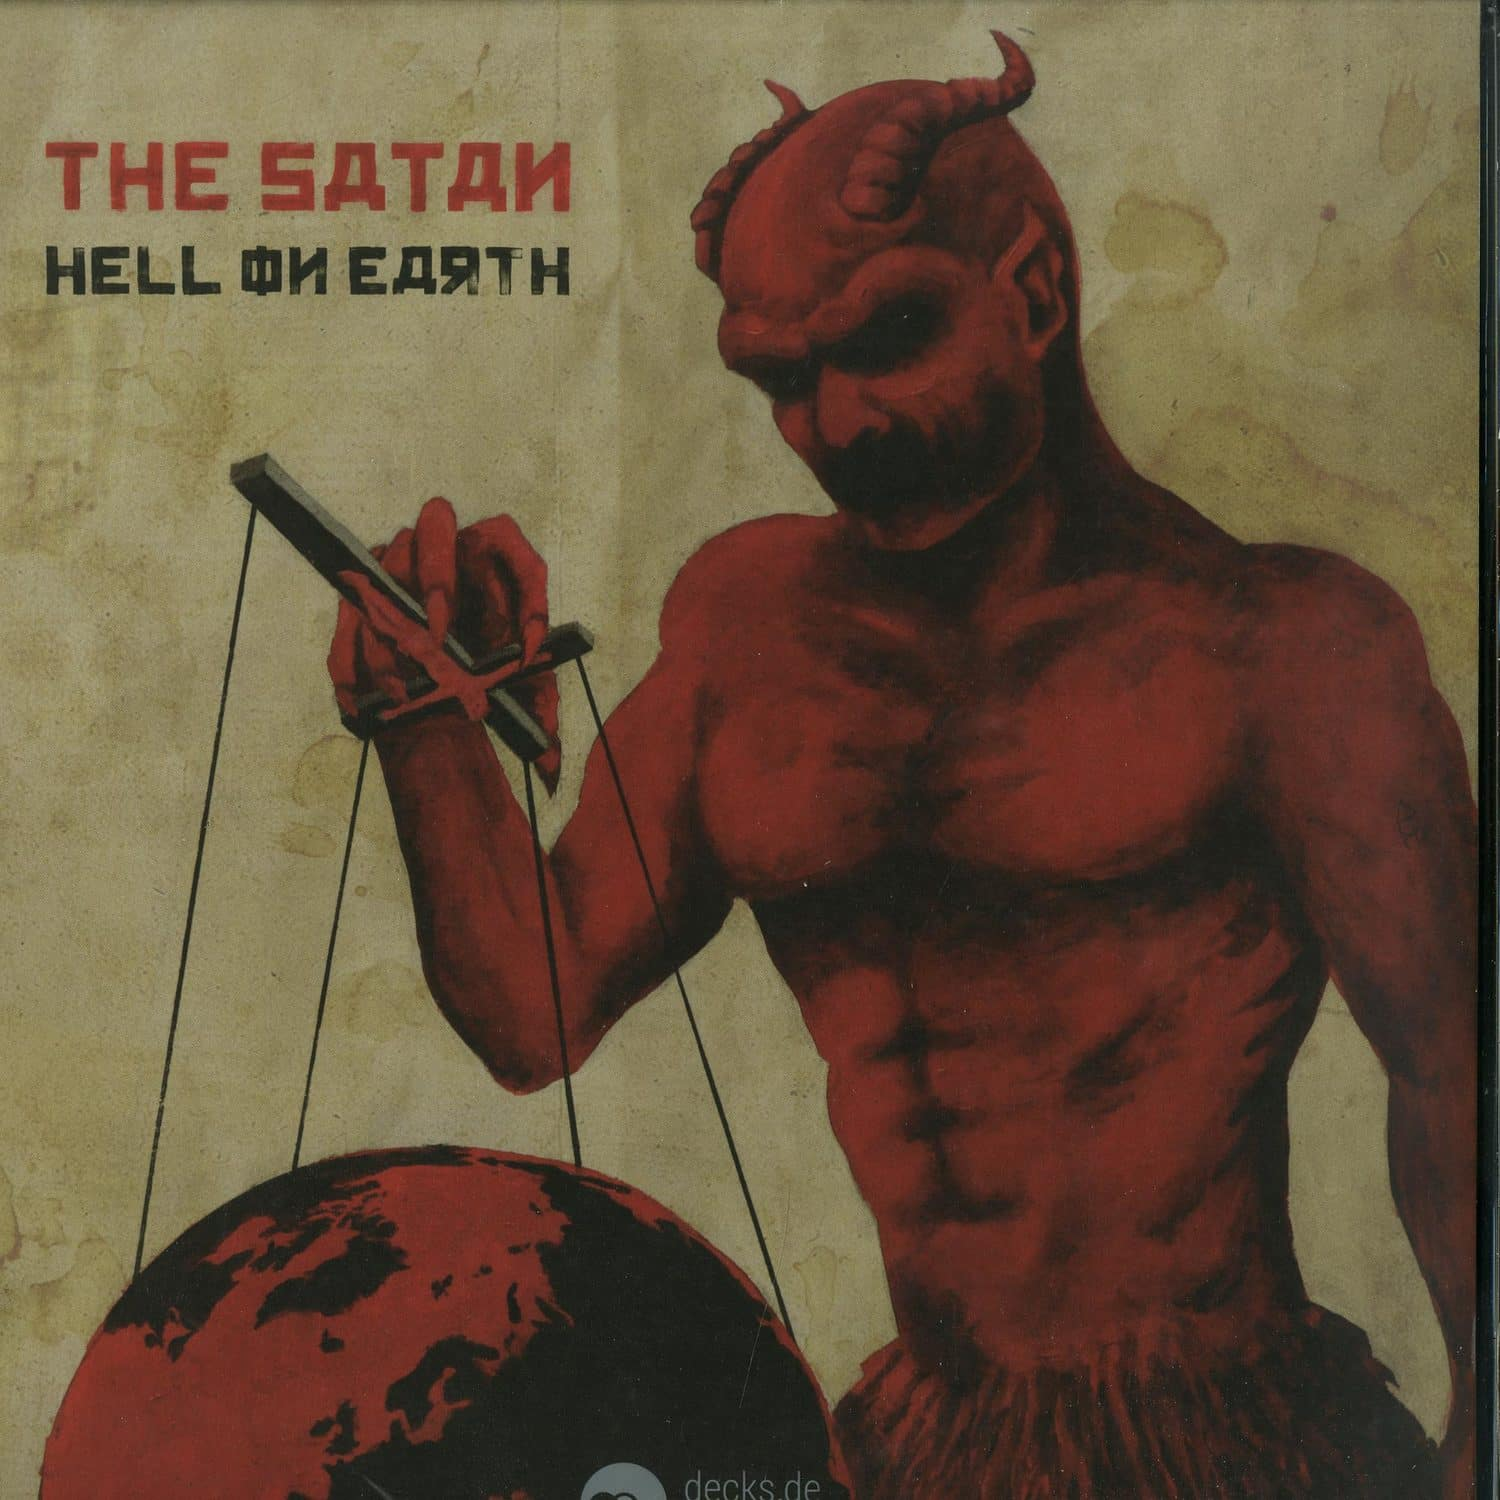 The Satan - HELL ON EARTH